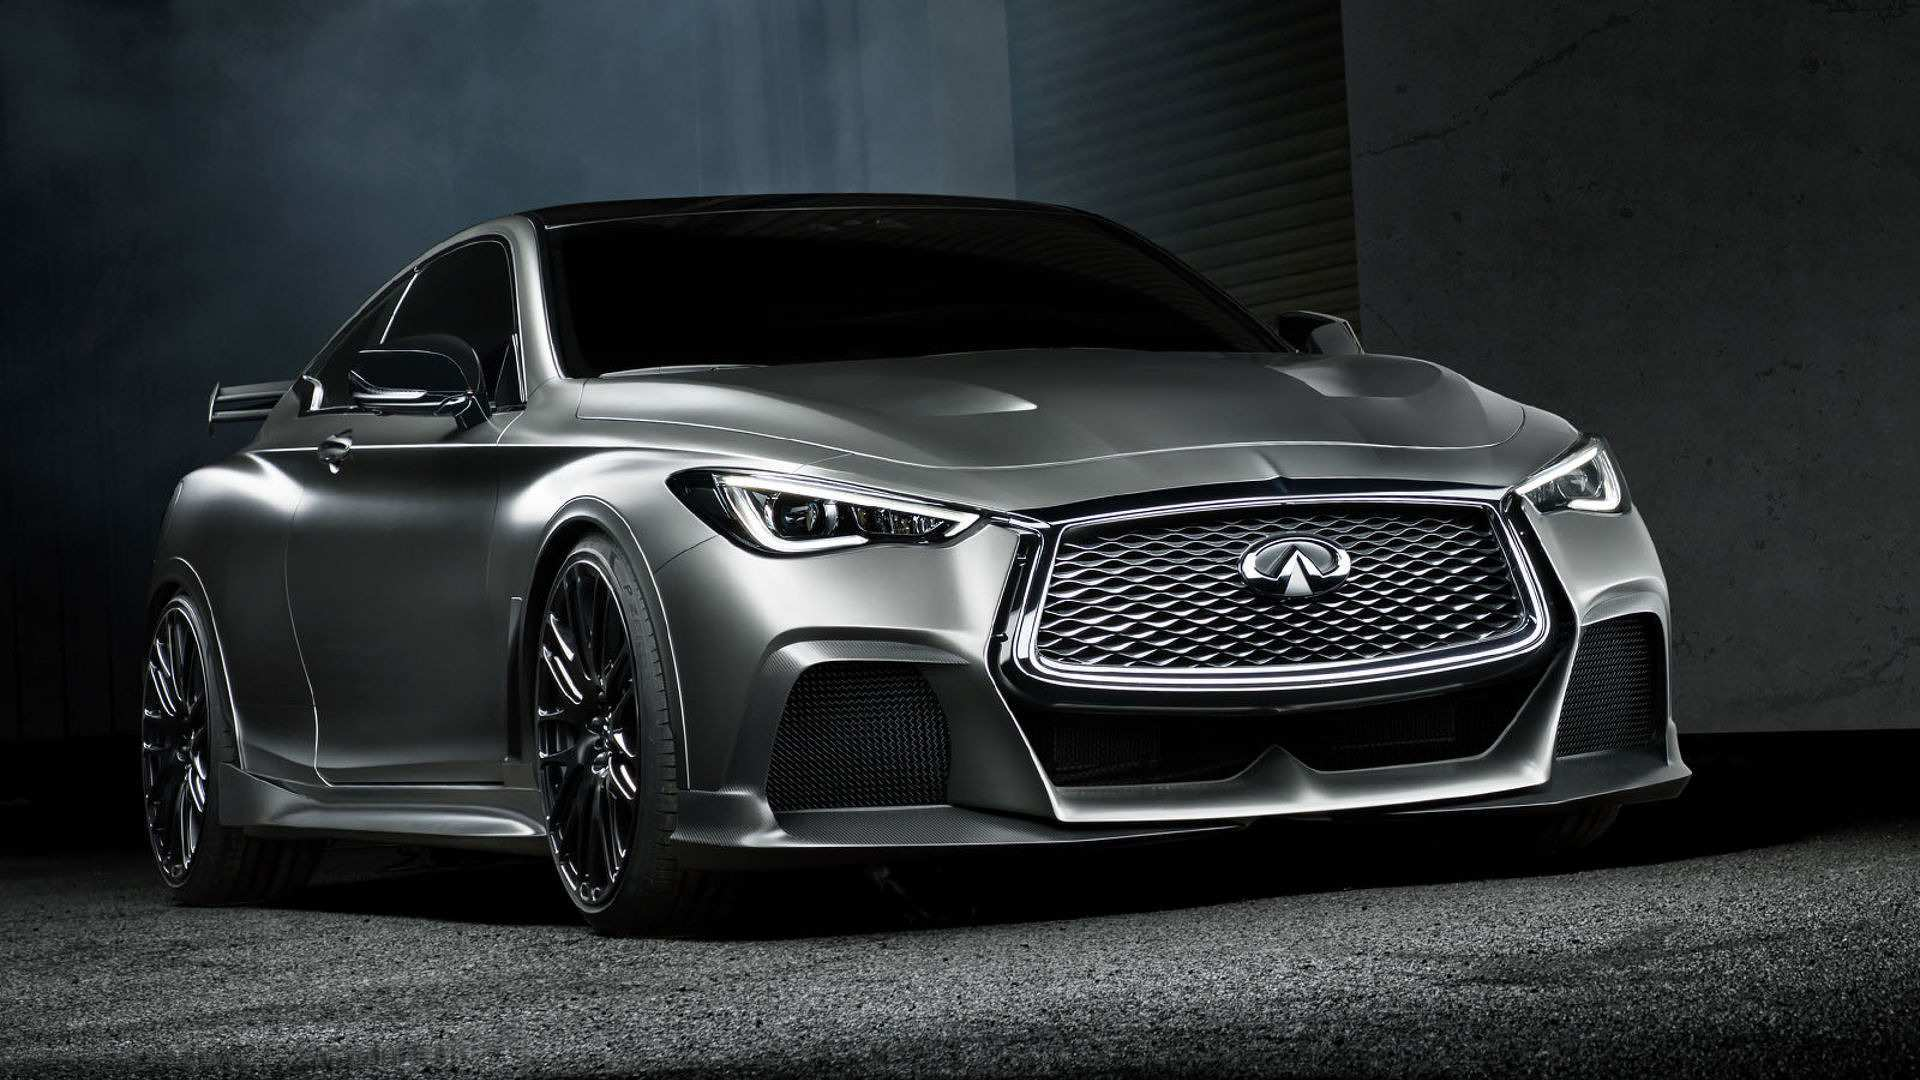 46 New 2020 Infiniti Q60 Coupe Configurations by 2020 Infiniti Q60 Coupe